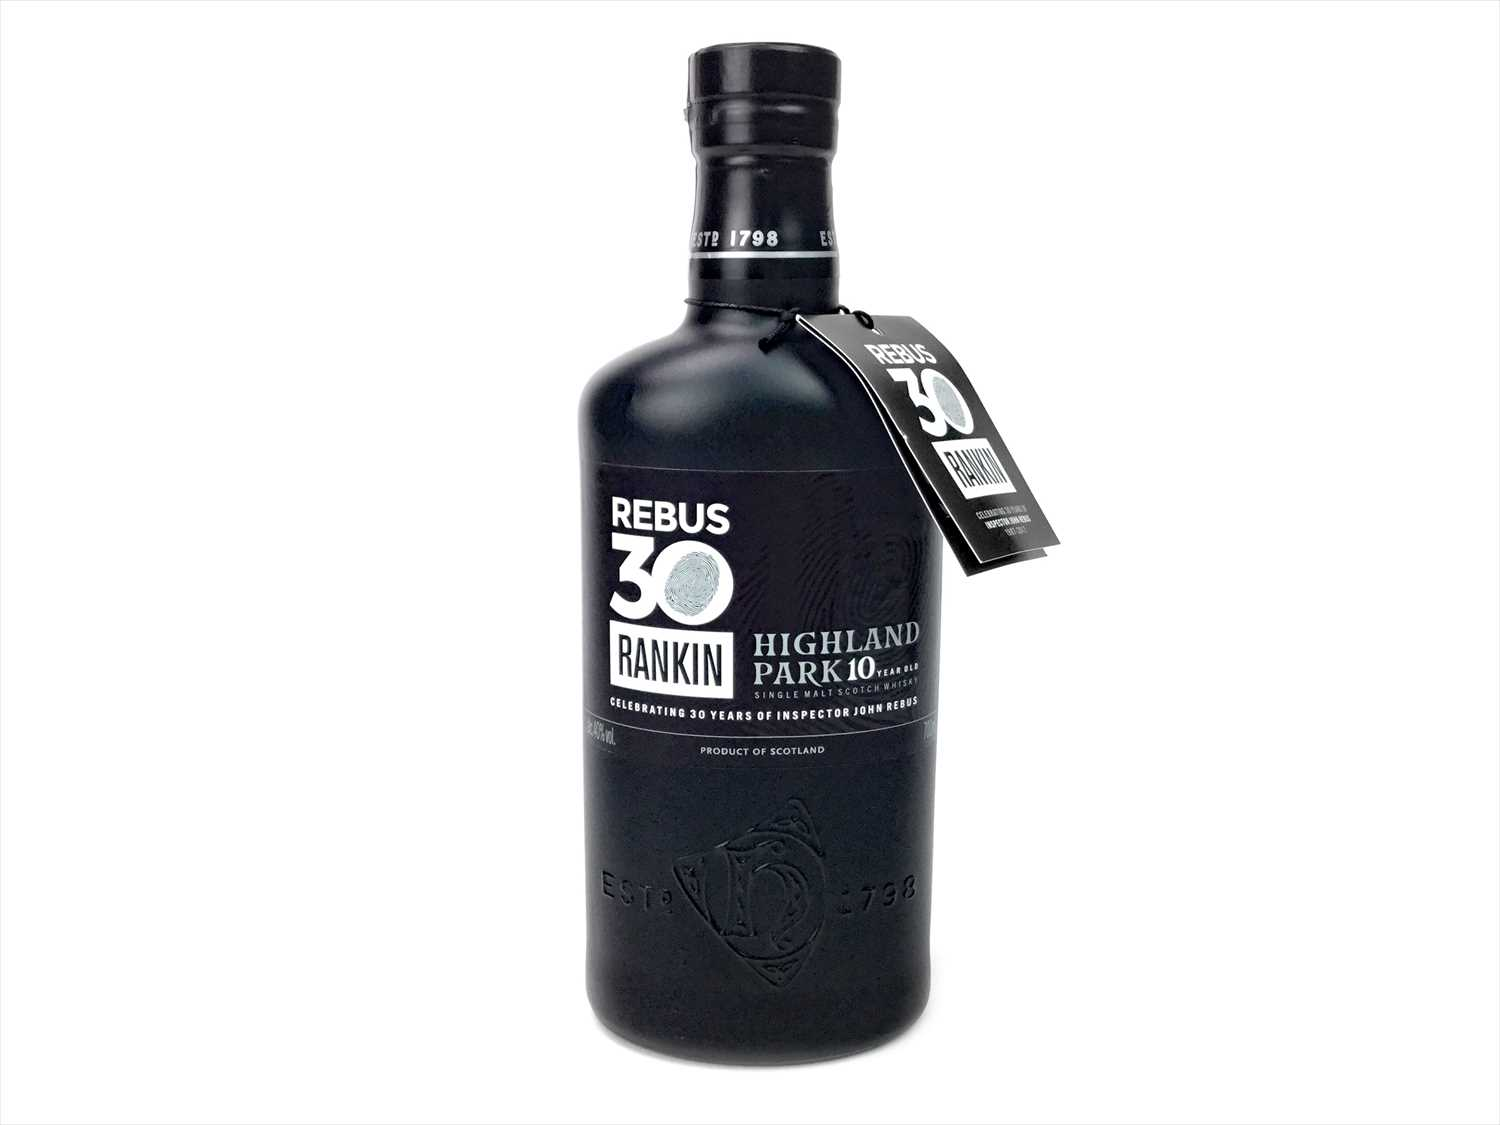 Lot 317-HIGHLAND PARK REBUS 10 YEARS OLD